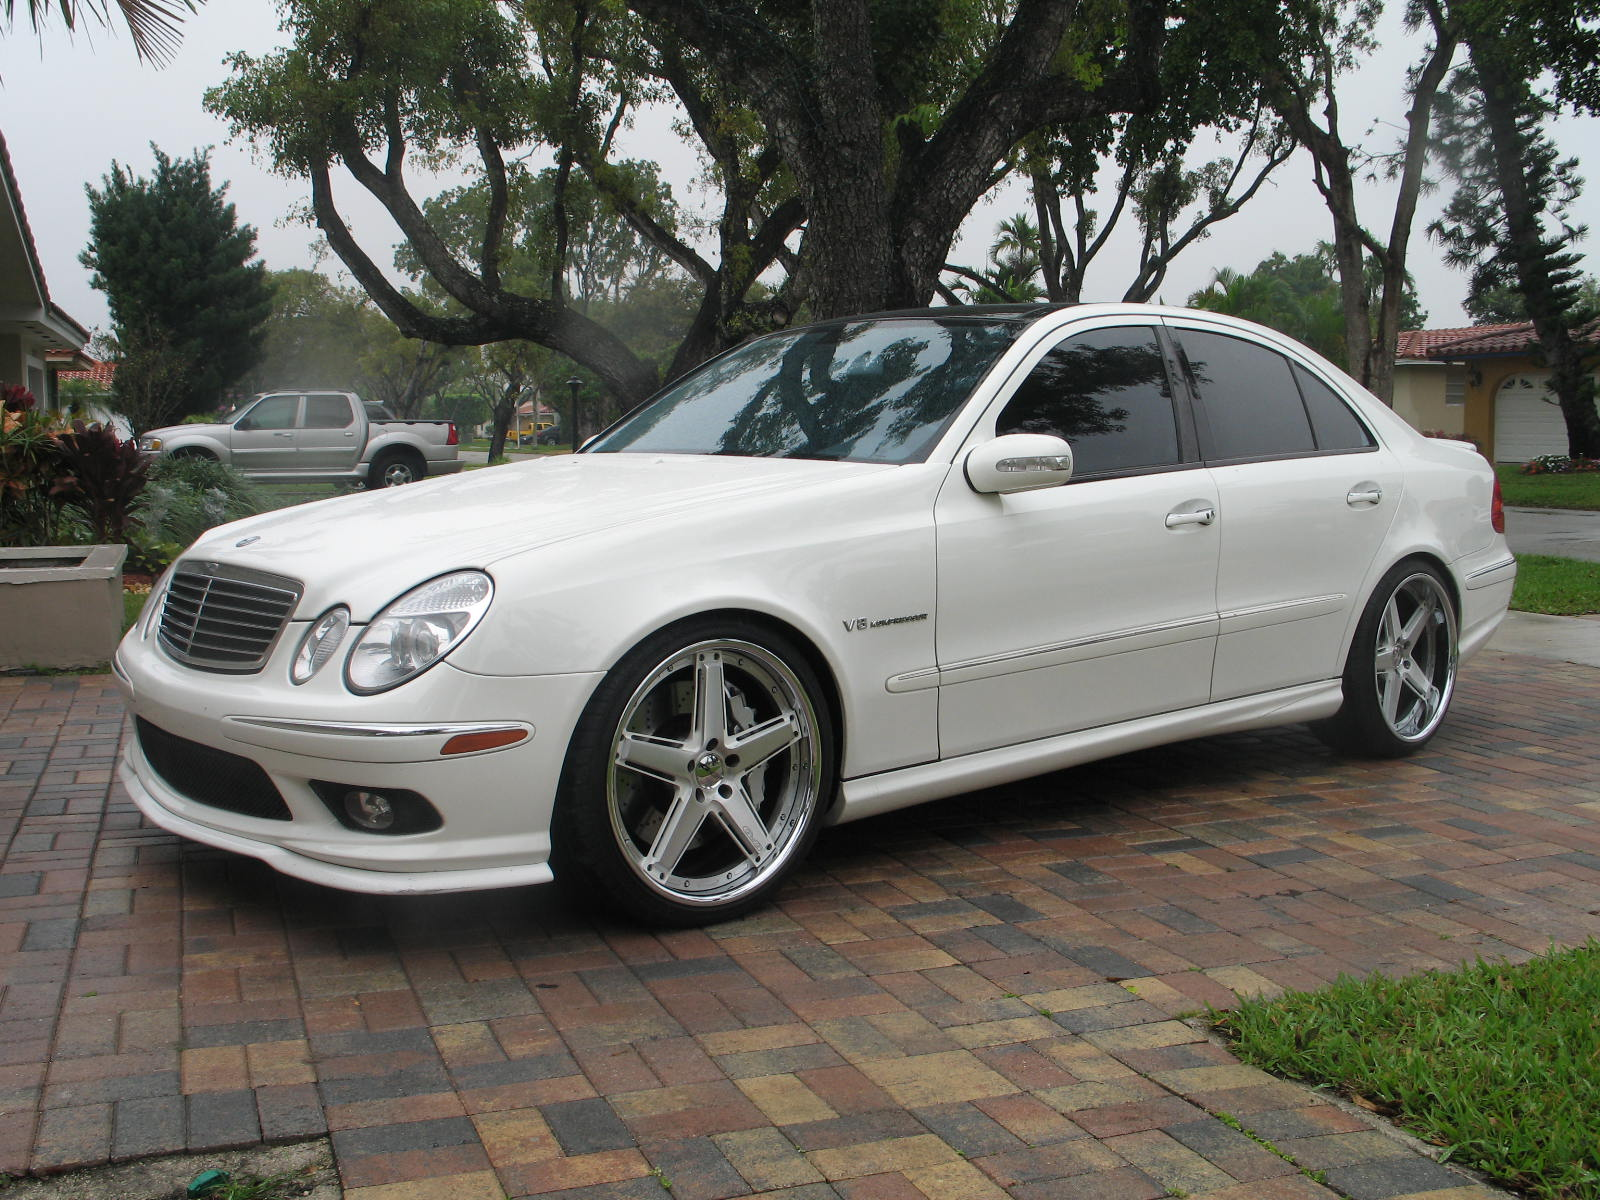 2005 Mercedes Benz E55 Amg E55k 1 4 Mile Drag Racing